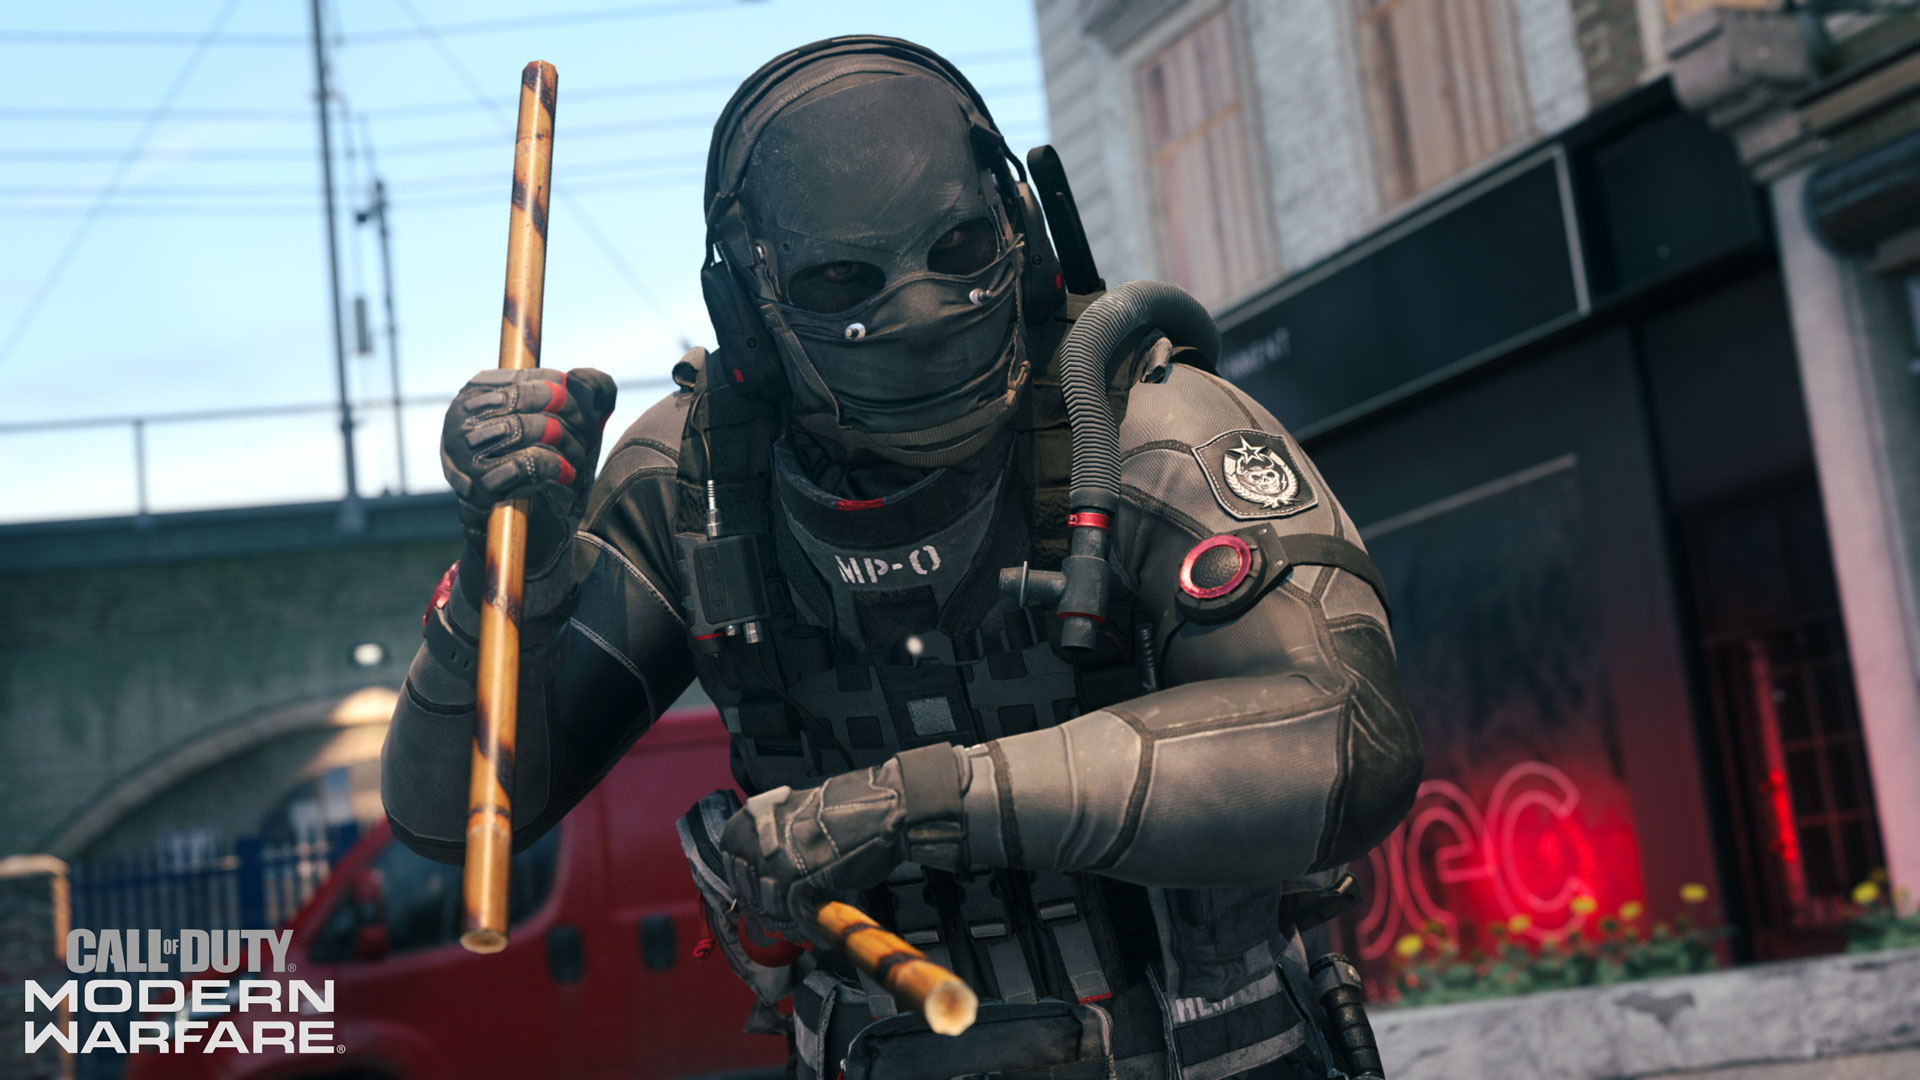 It's gonna be another big download for this week's Call of Duty: Warzone Season 5 patch - VG247